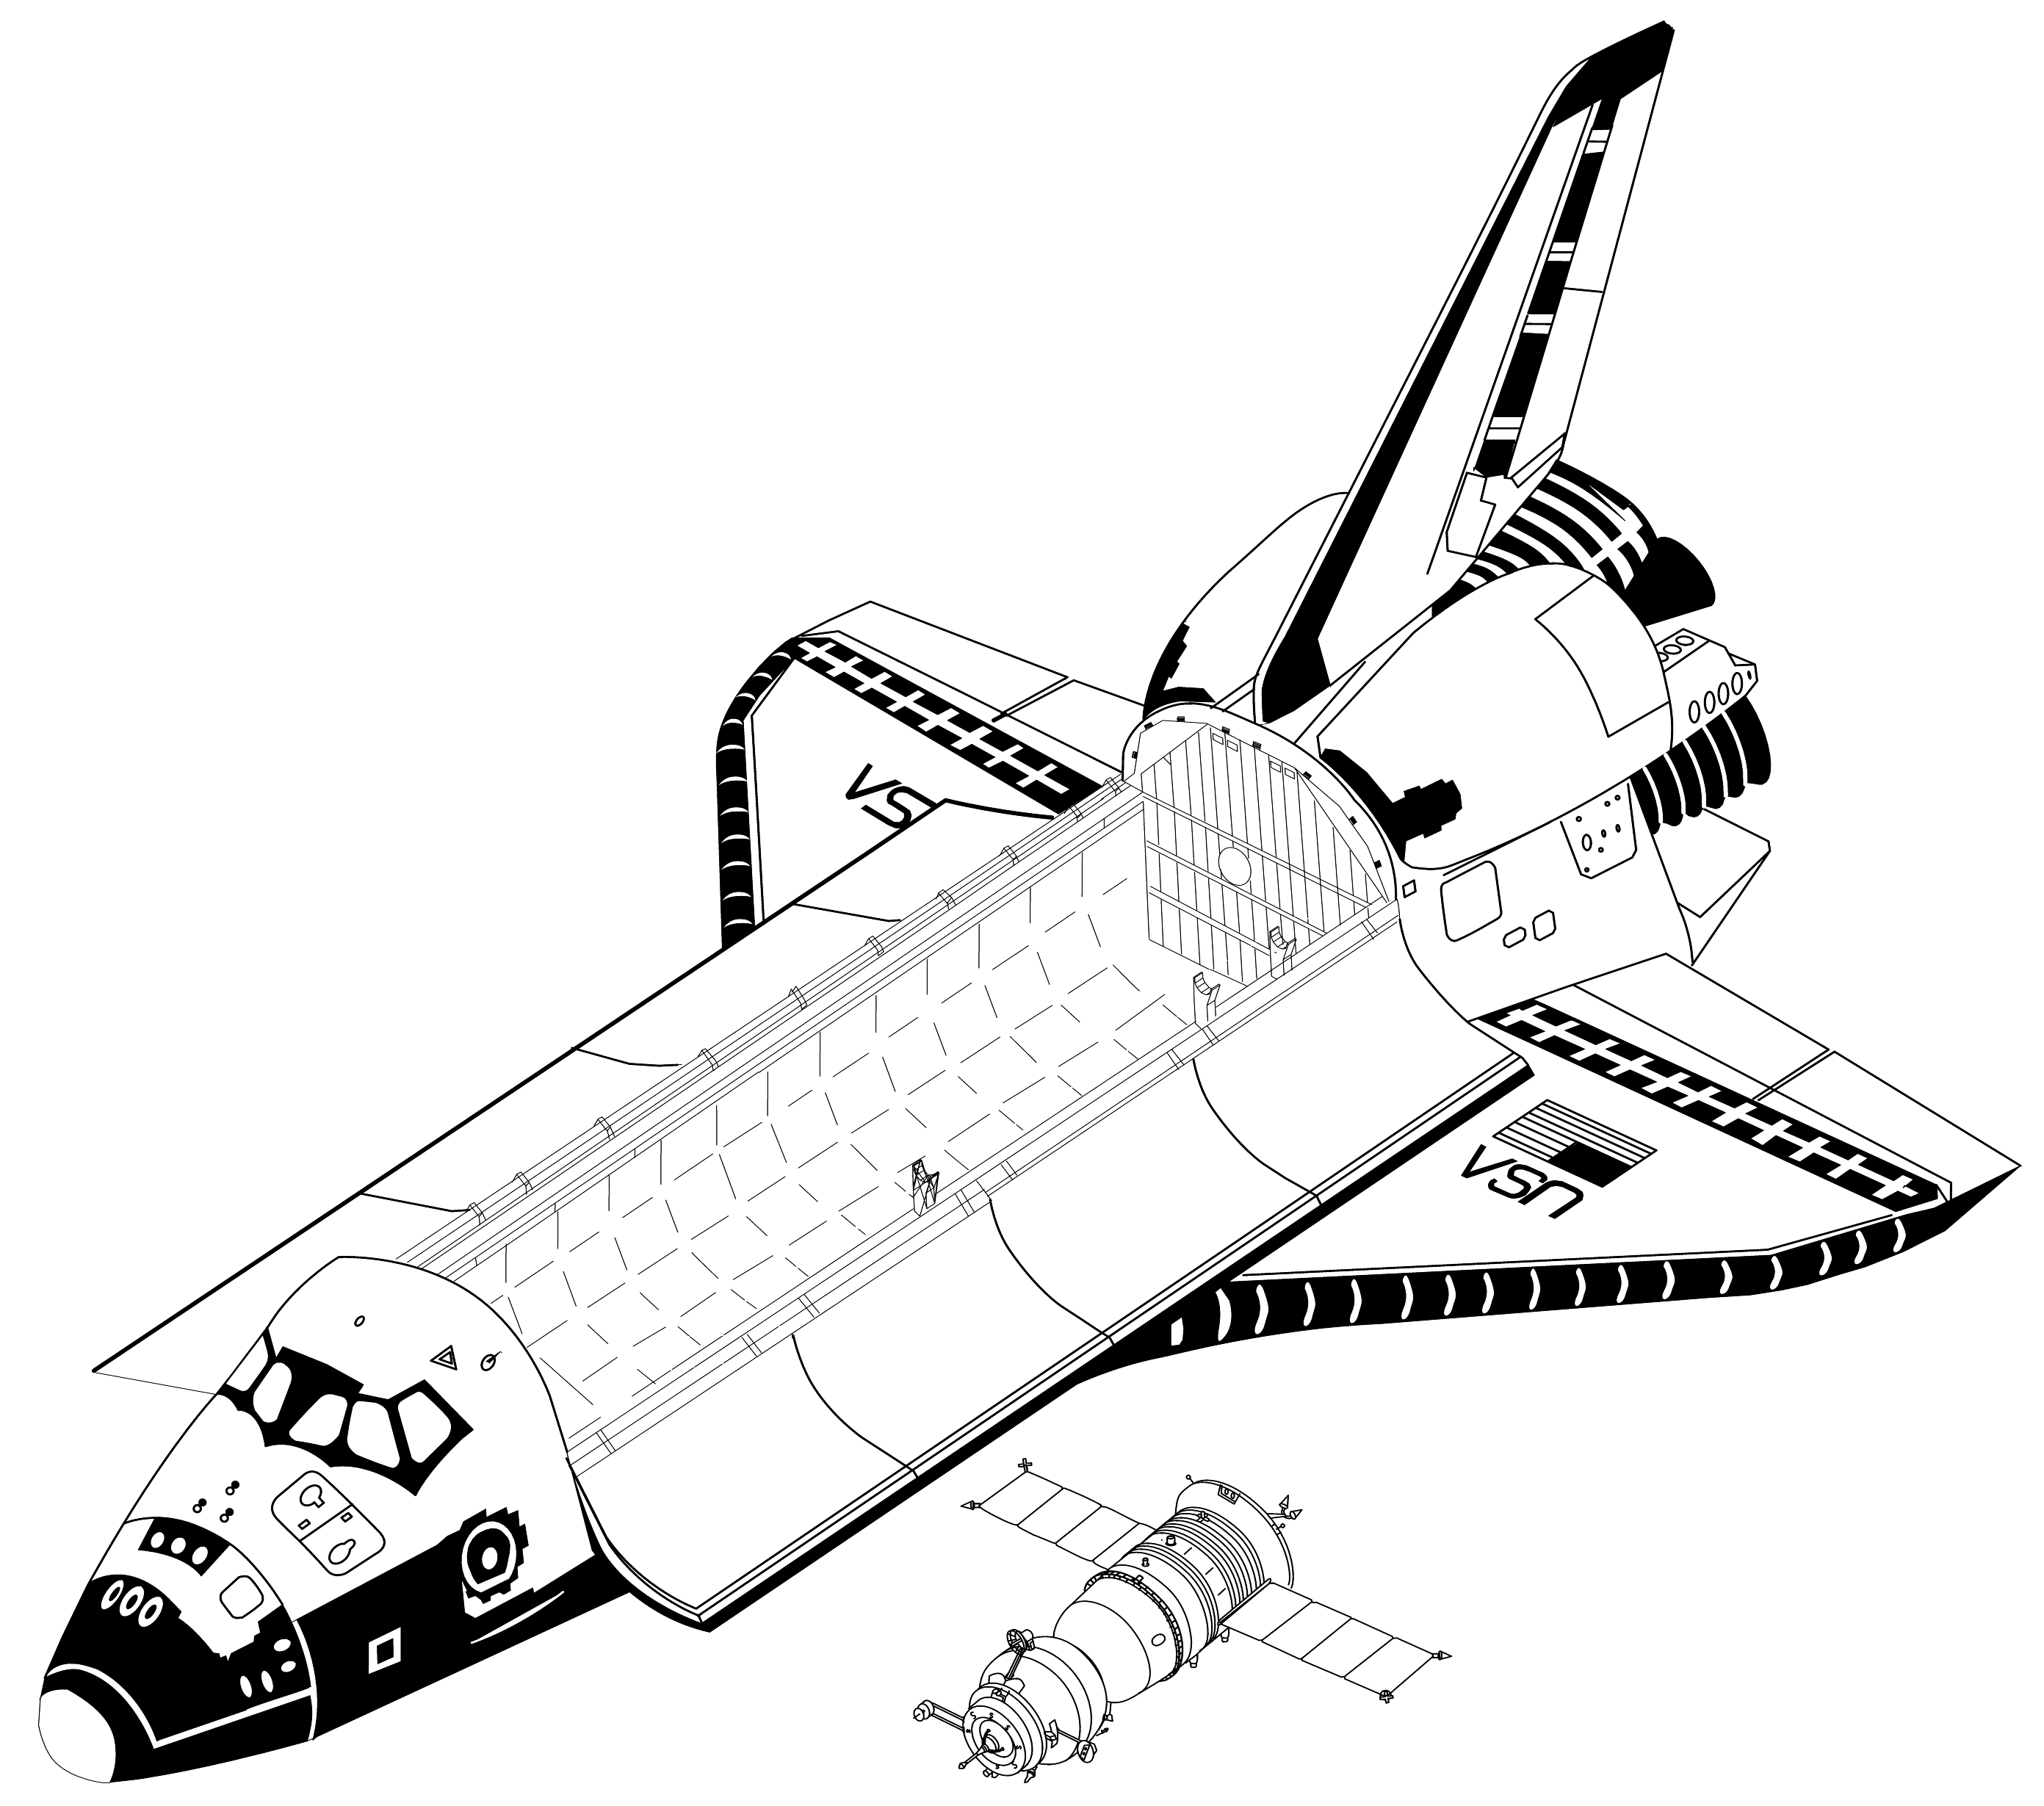 File:Space Shuttle vs Soyuz TM - to scale drawing.png ...